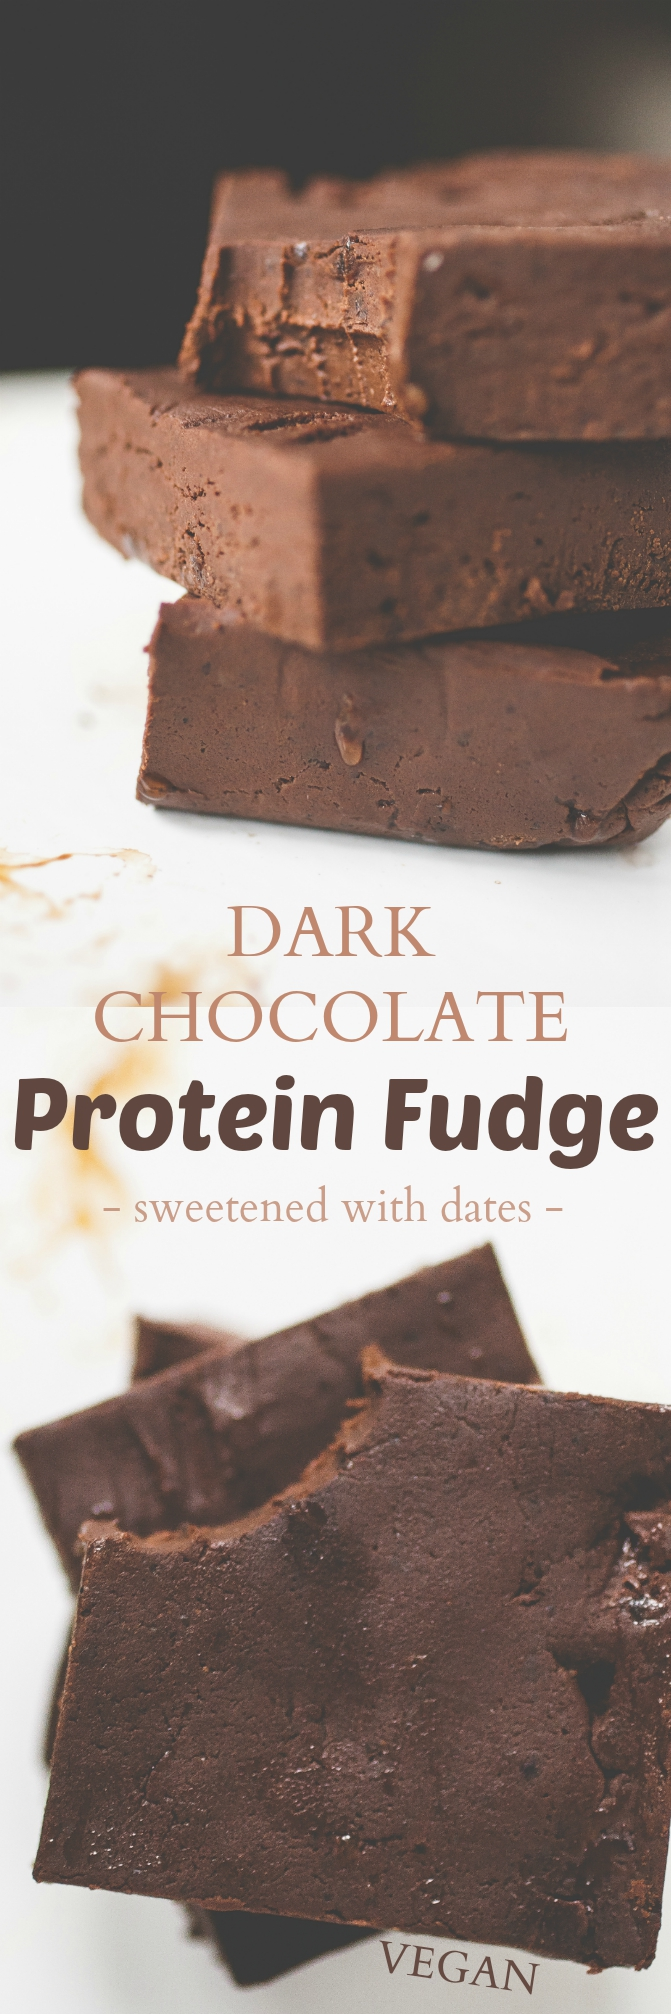 Produce On Parade - Dark Chocolate Protein Fudge & The Fed Up Challenge - This delicious, rich fudge is full of protein thanks to a little help from good ol' black beans and peanut butter, and is sweetened with dates! No added sugar, maple syrup, or agave nectar here, folks. You won't believe how incredible this fudge is. It's a new staple snack/dessert in our home and the perfect thing to grab for a healthy breakfast on the go. Best yet, it's ready in 35 minutes. Adapted from Peachy Plate.